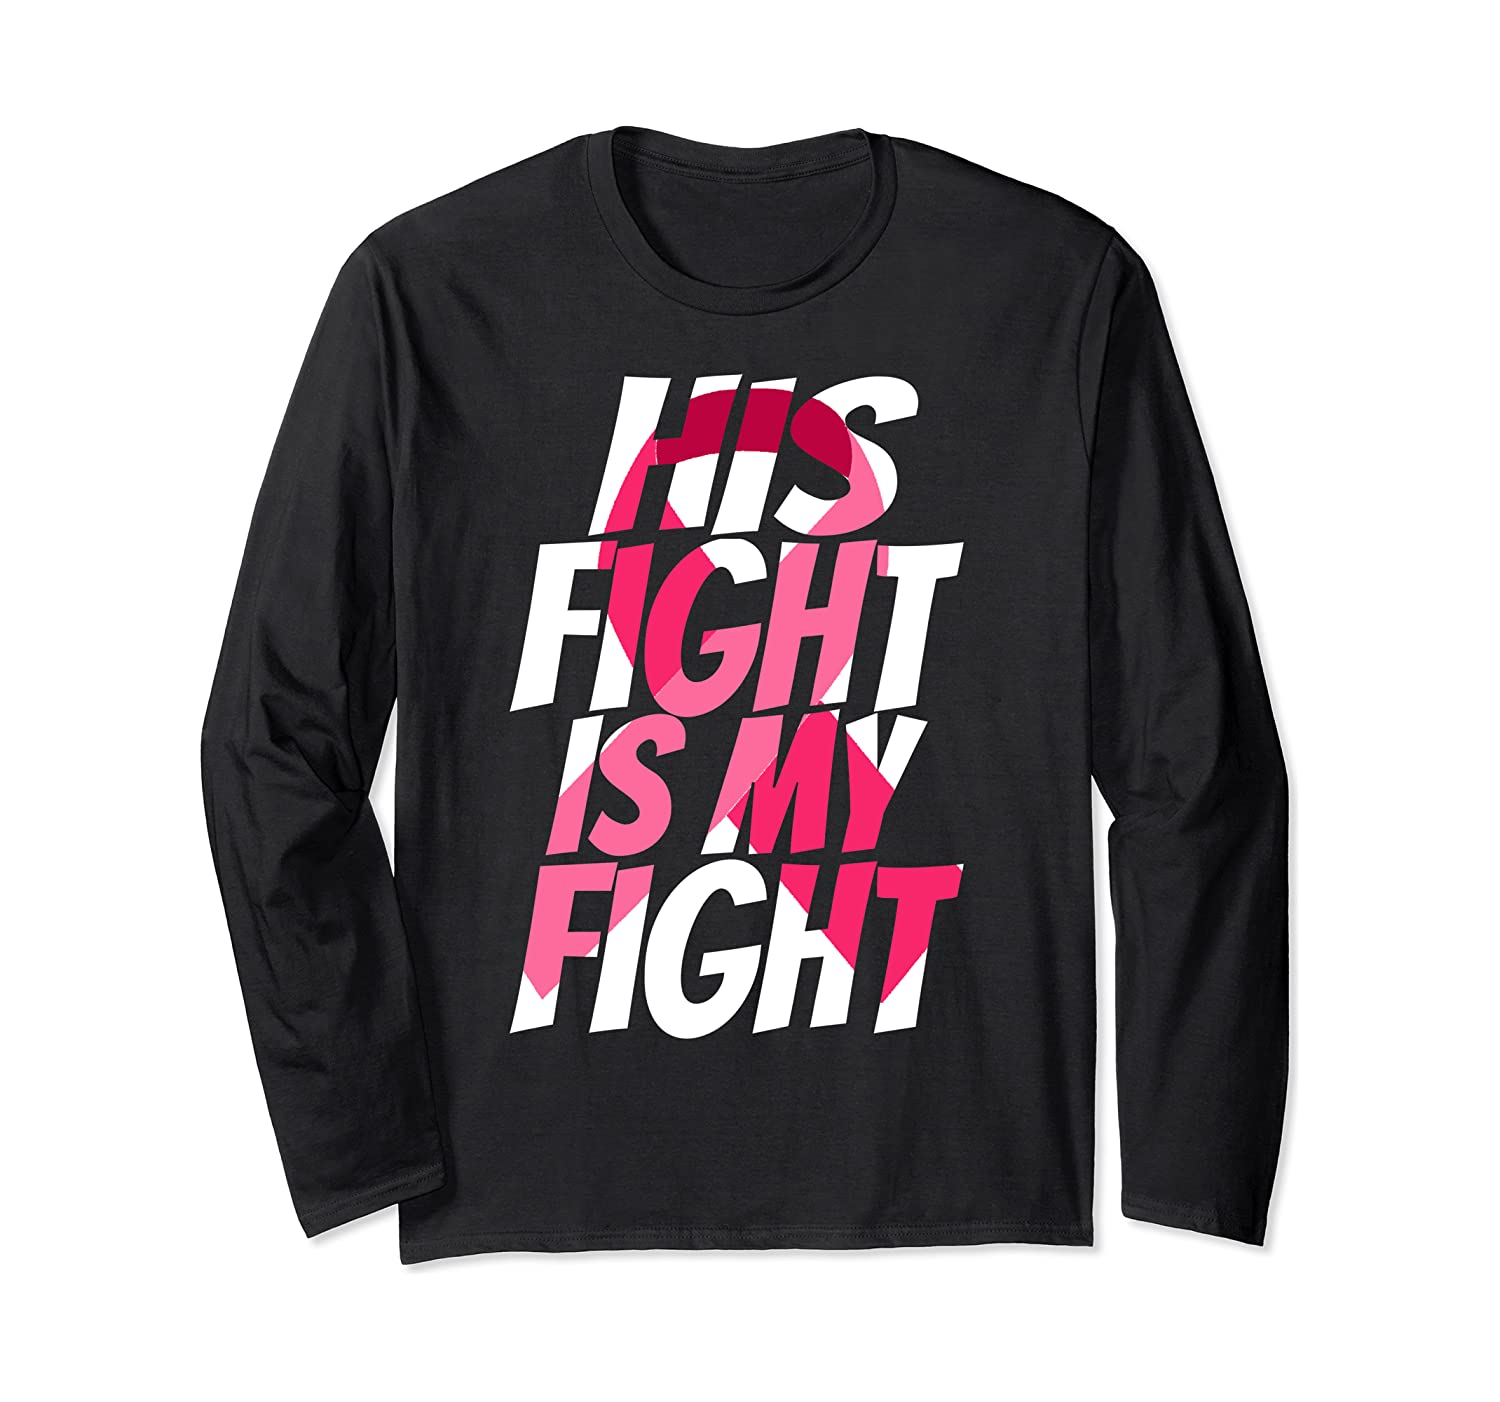 Hot Pink Ribbon For Him Products Cleft Palate Awareness Long Sleeve T-shirt